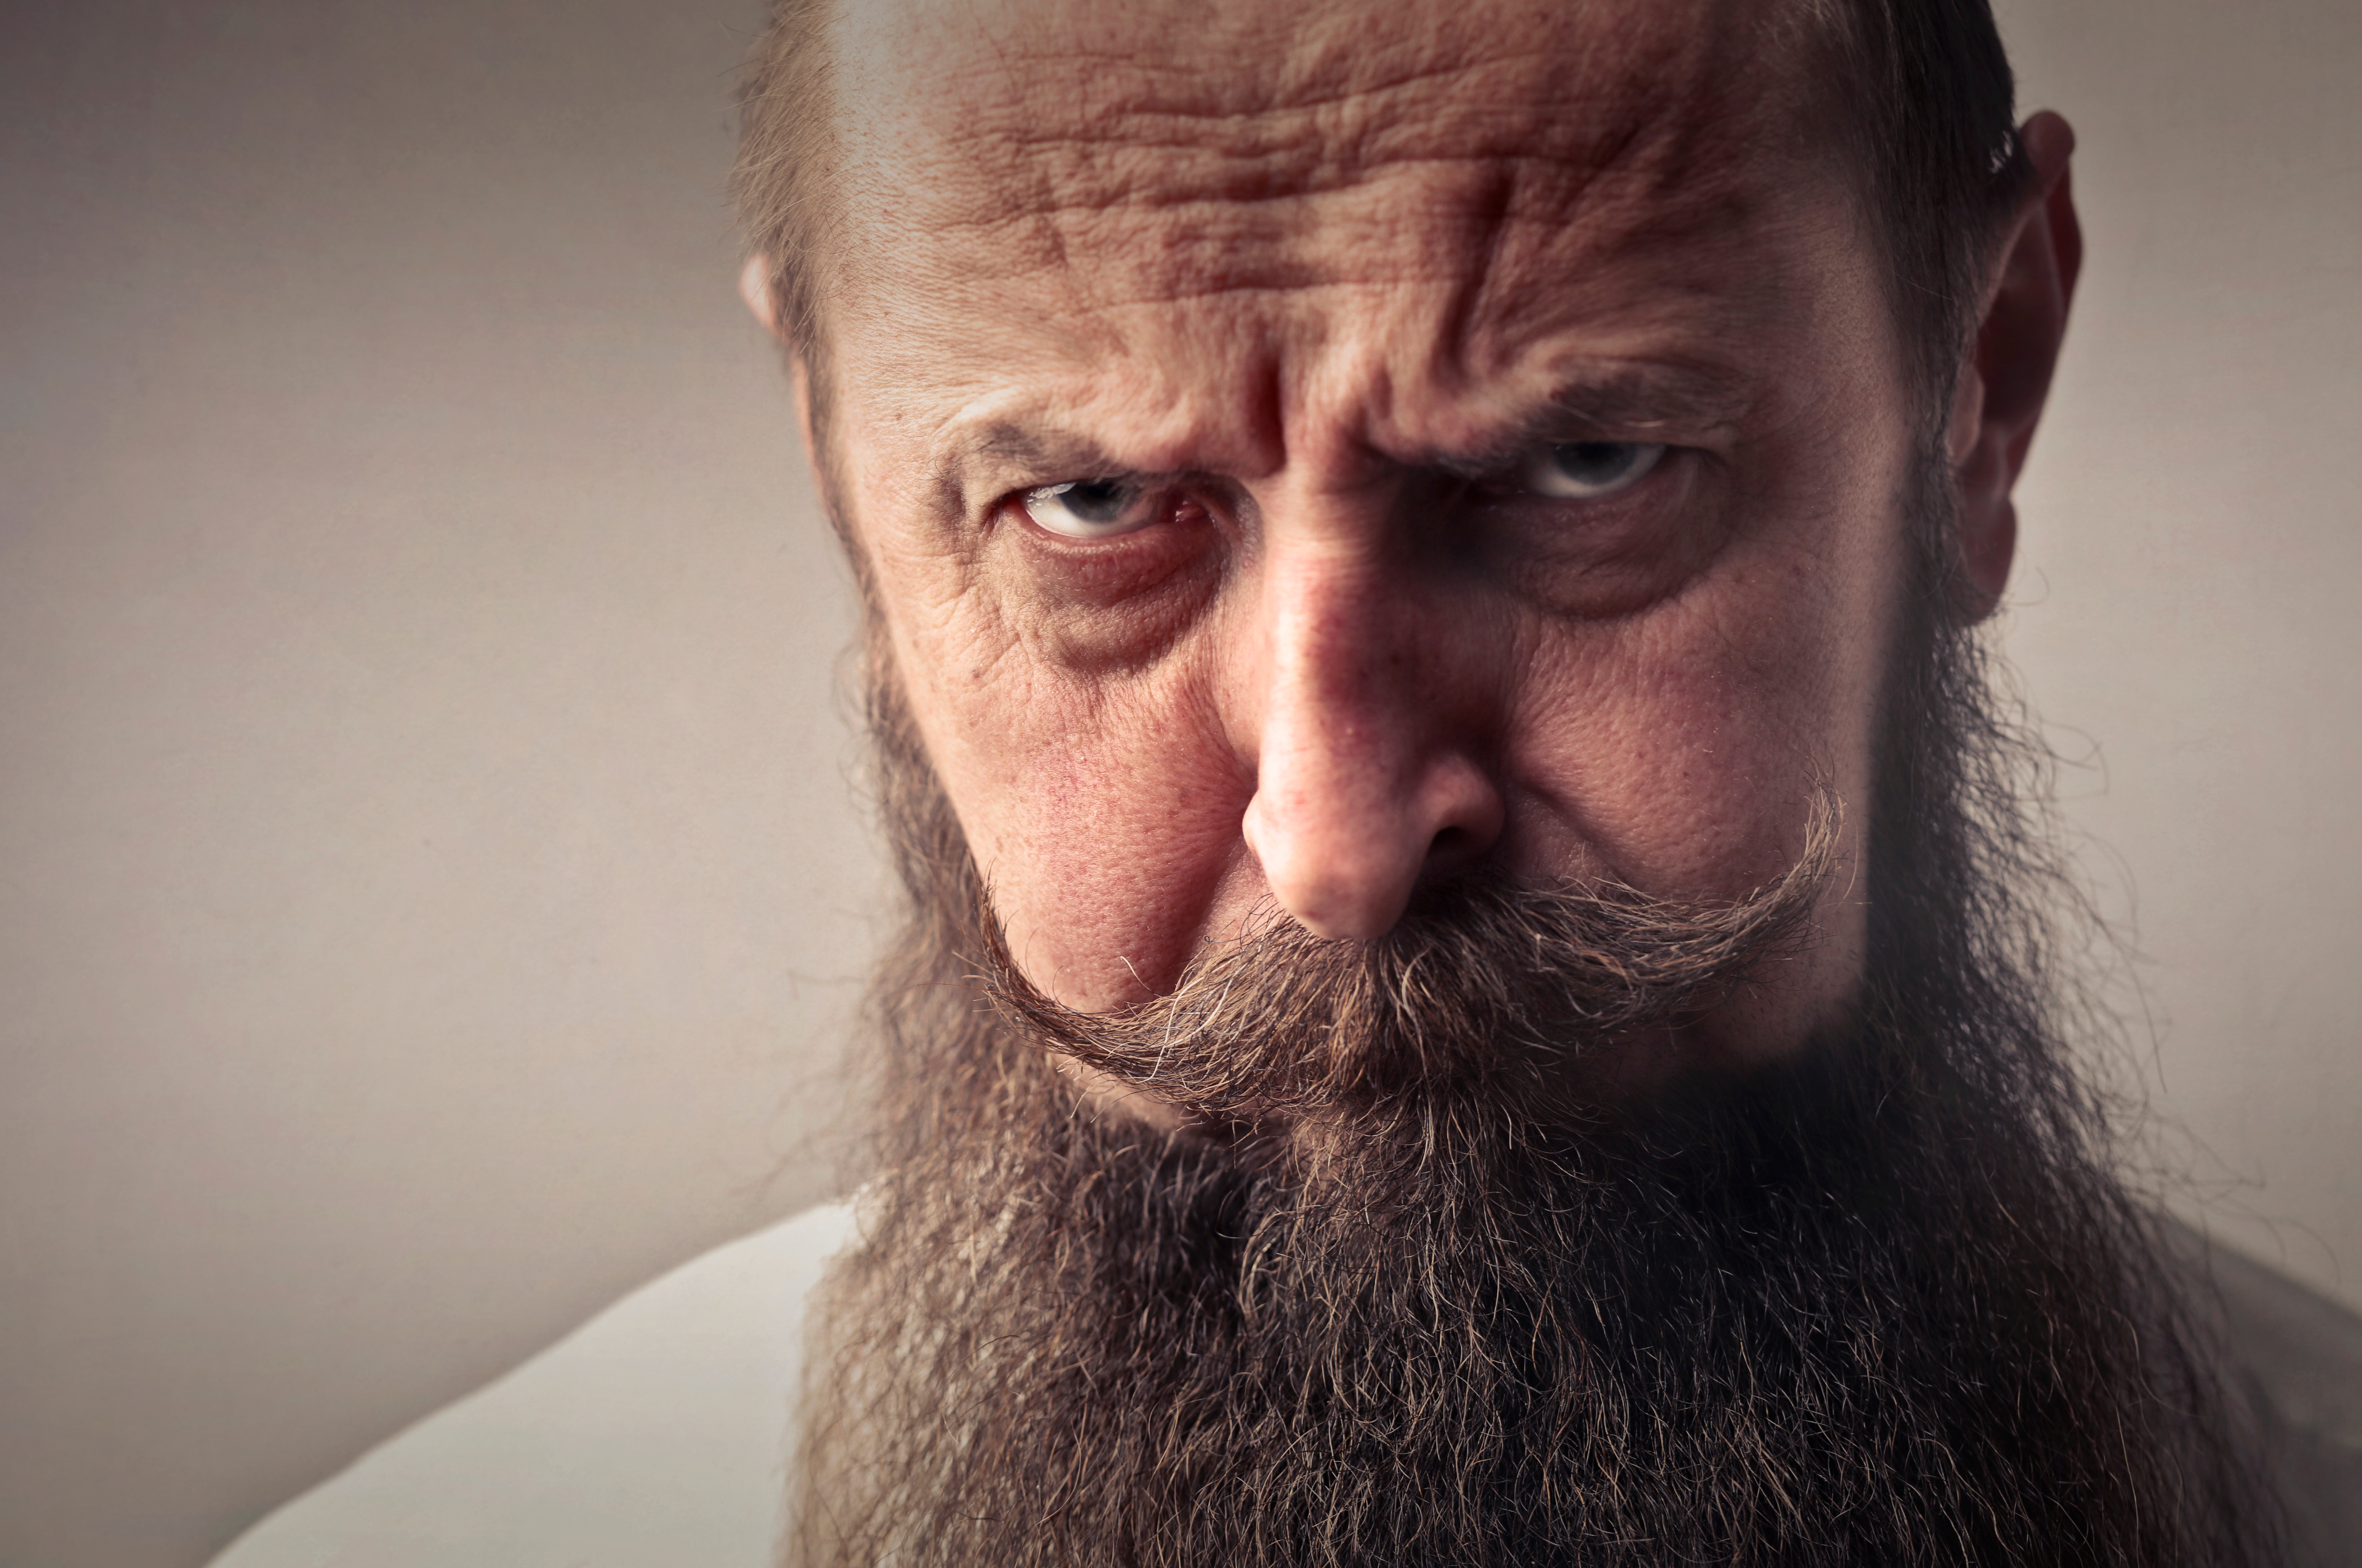 Canva - Elderly Man With Full Beard and Mustache